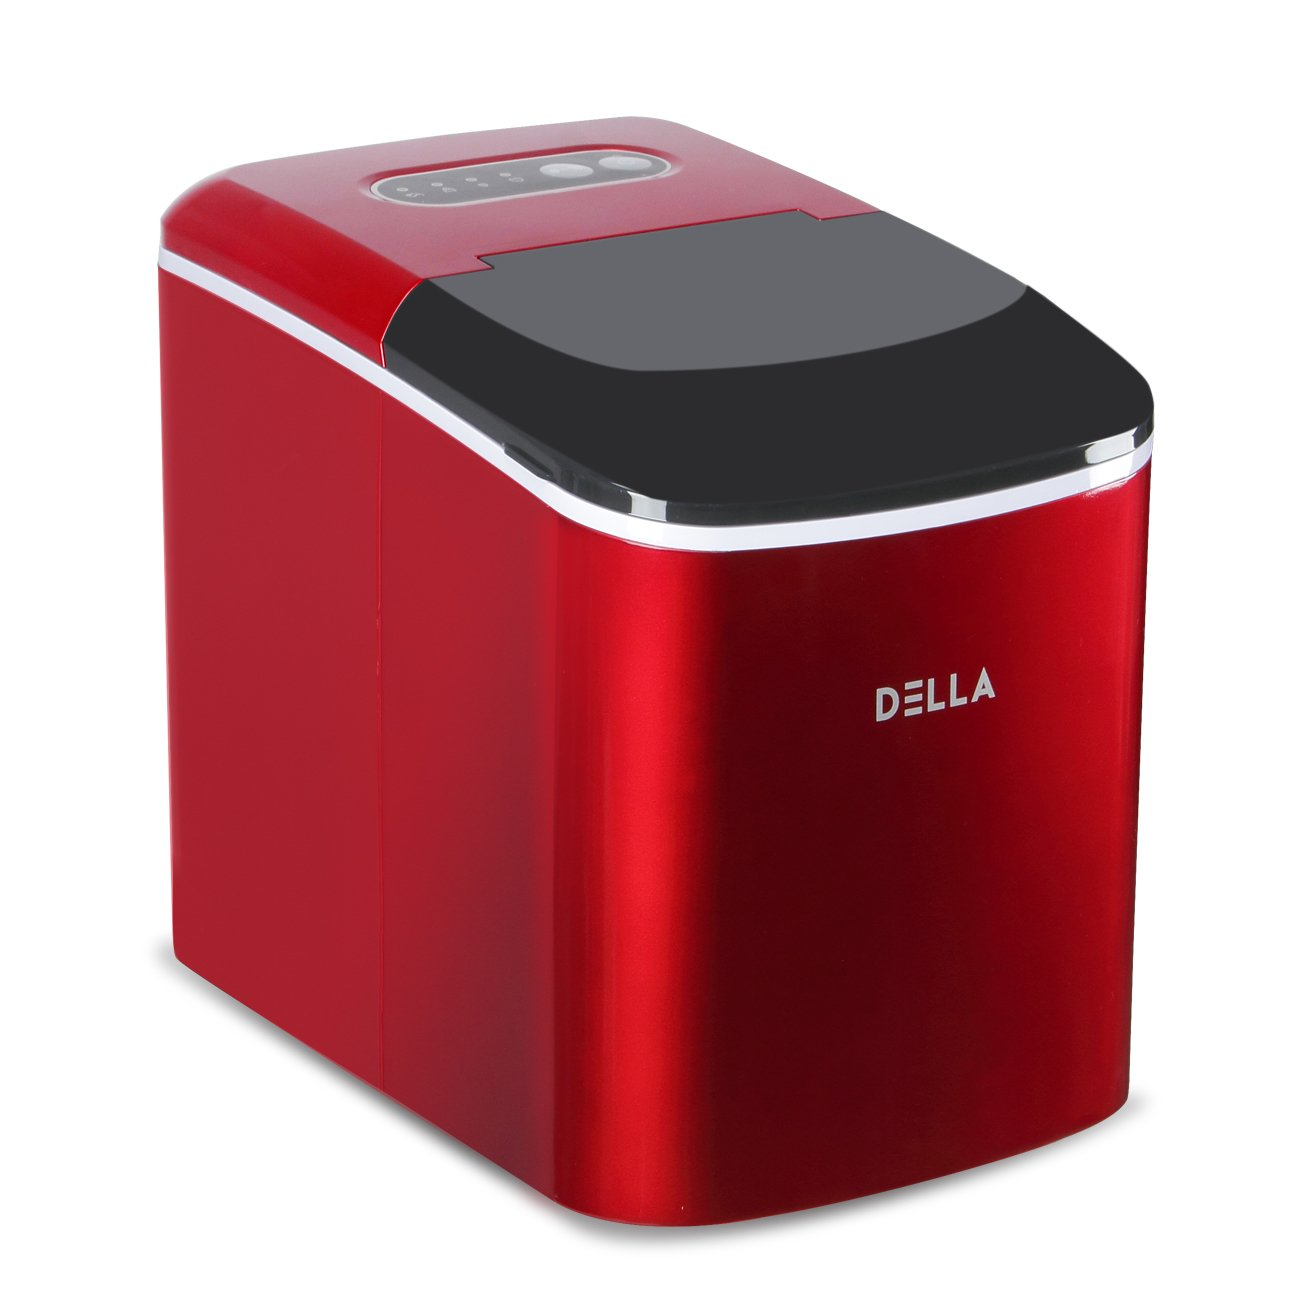 DELLA Compact Portable Ice Maker Machine 2-Size Cube Capable of Producing 26 Lbs. Of Ice Per Day (Red)